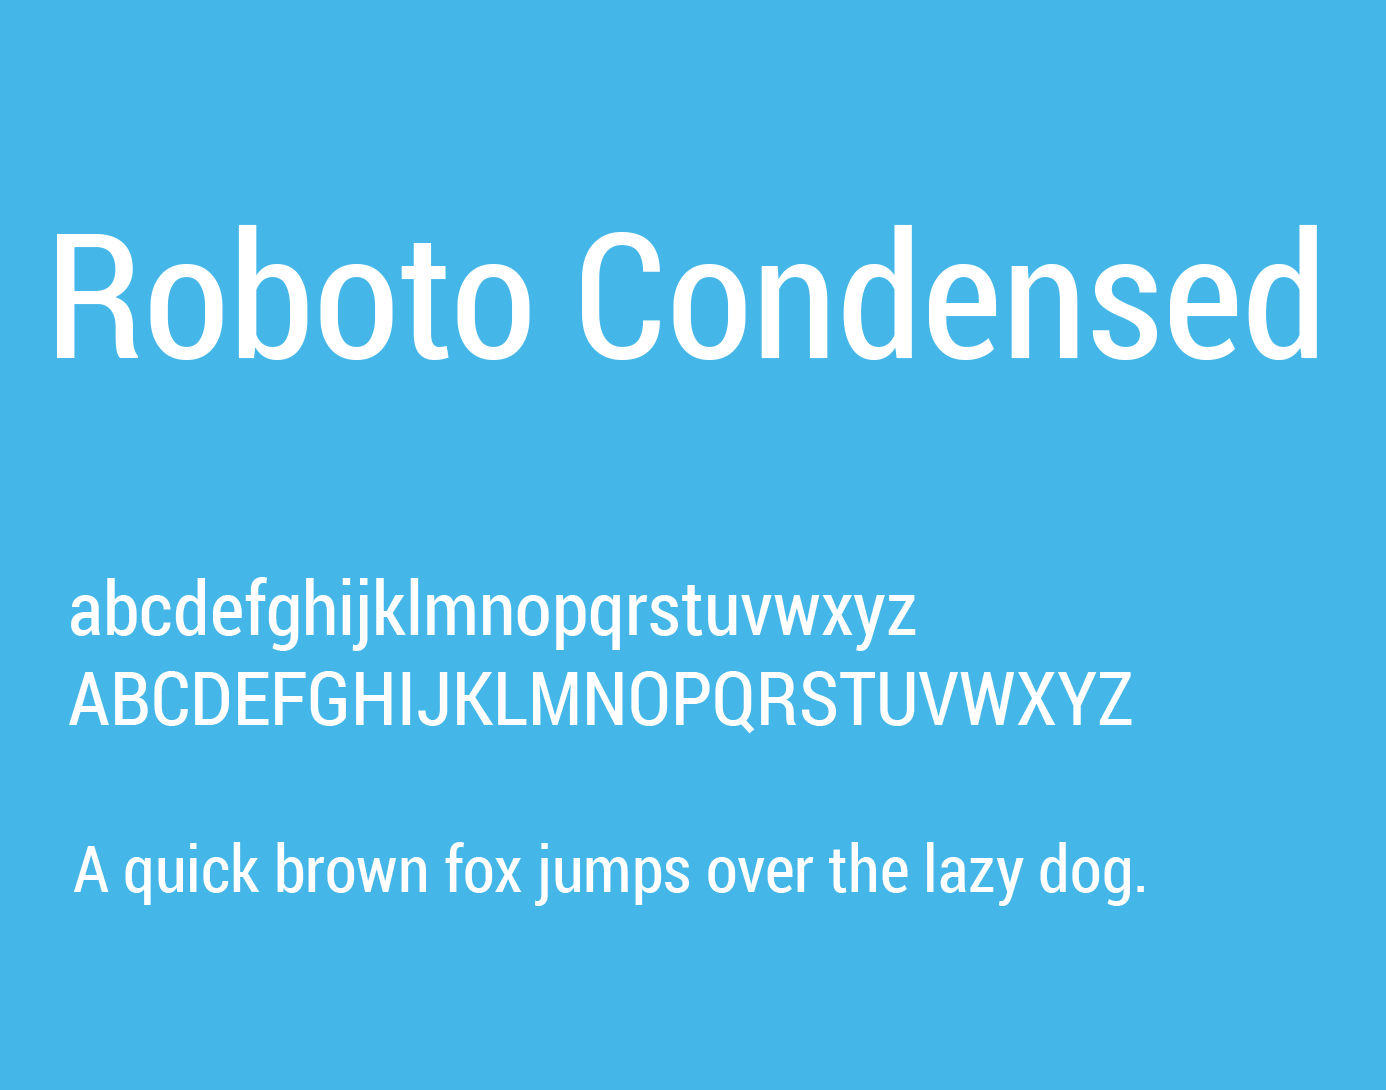 Roboto Condensed Font Free Download - Free Fonts